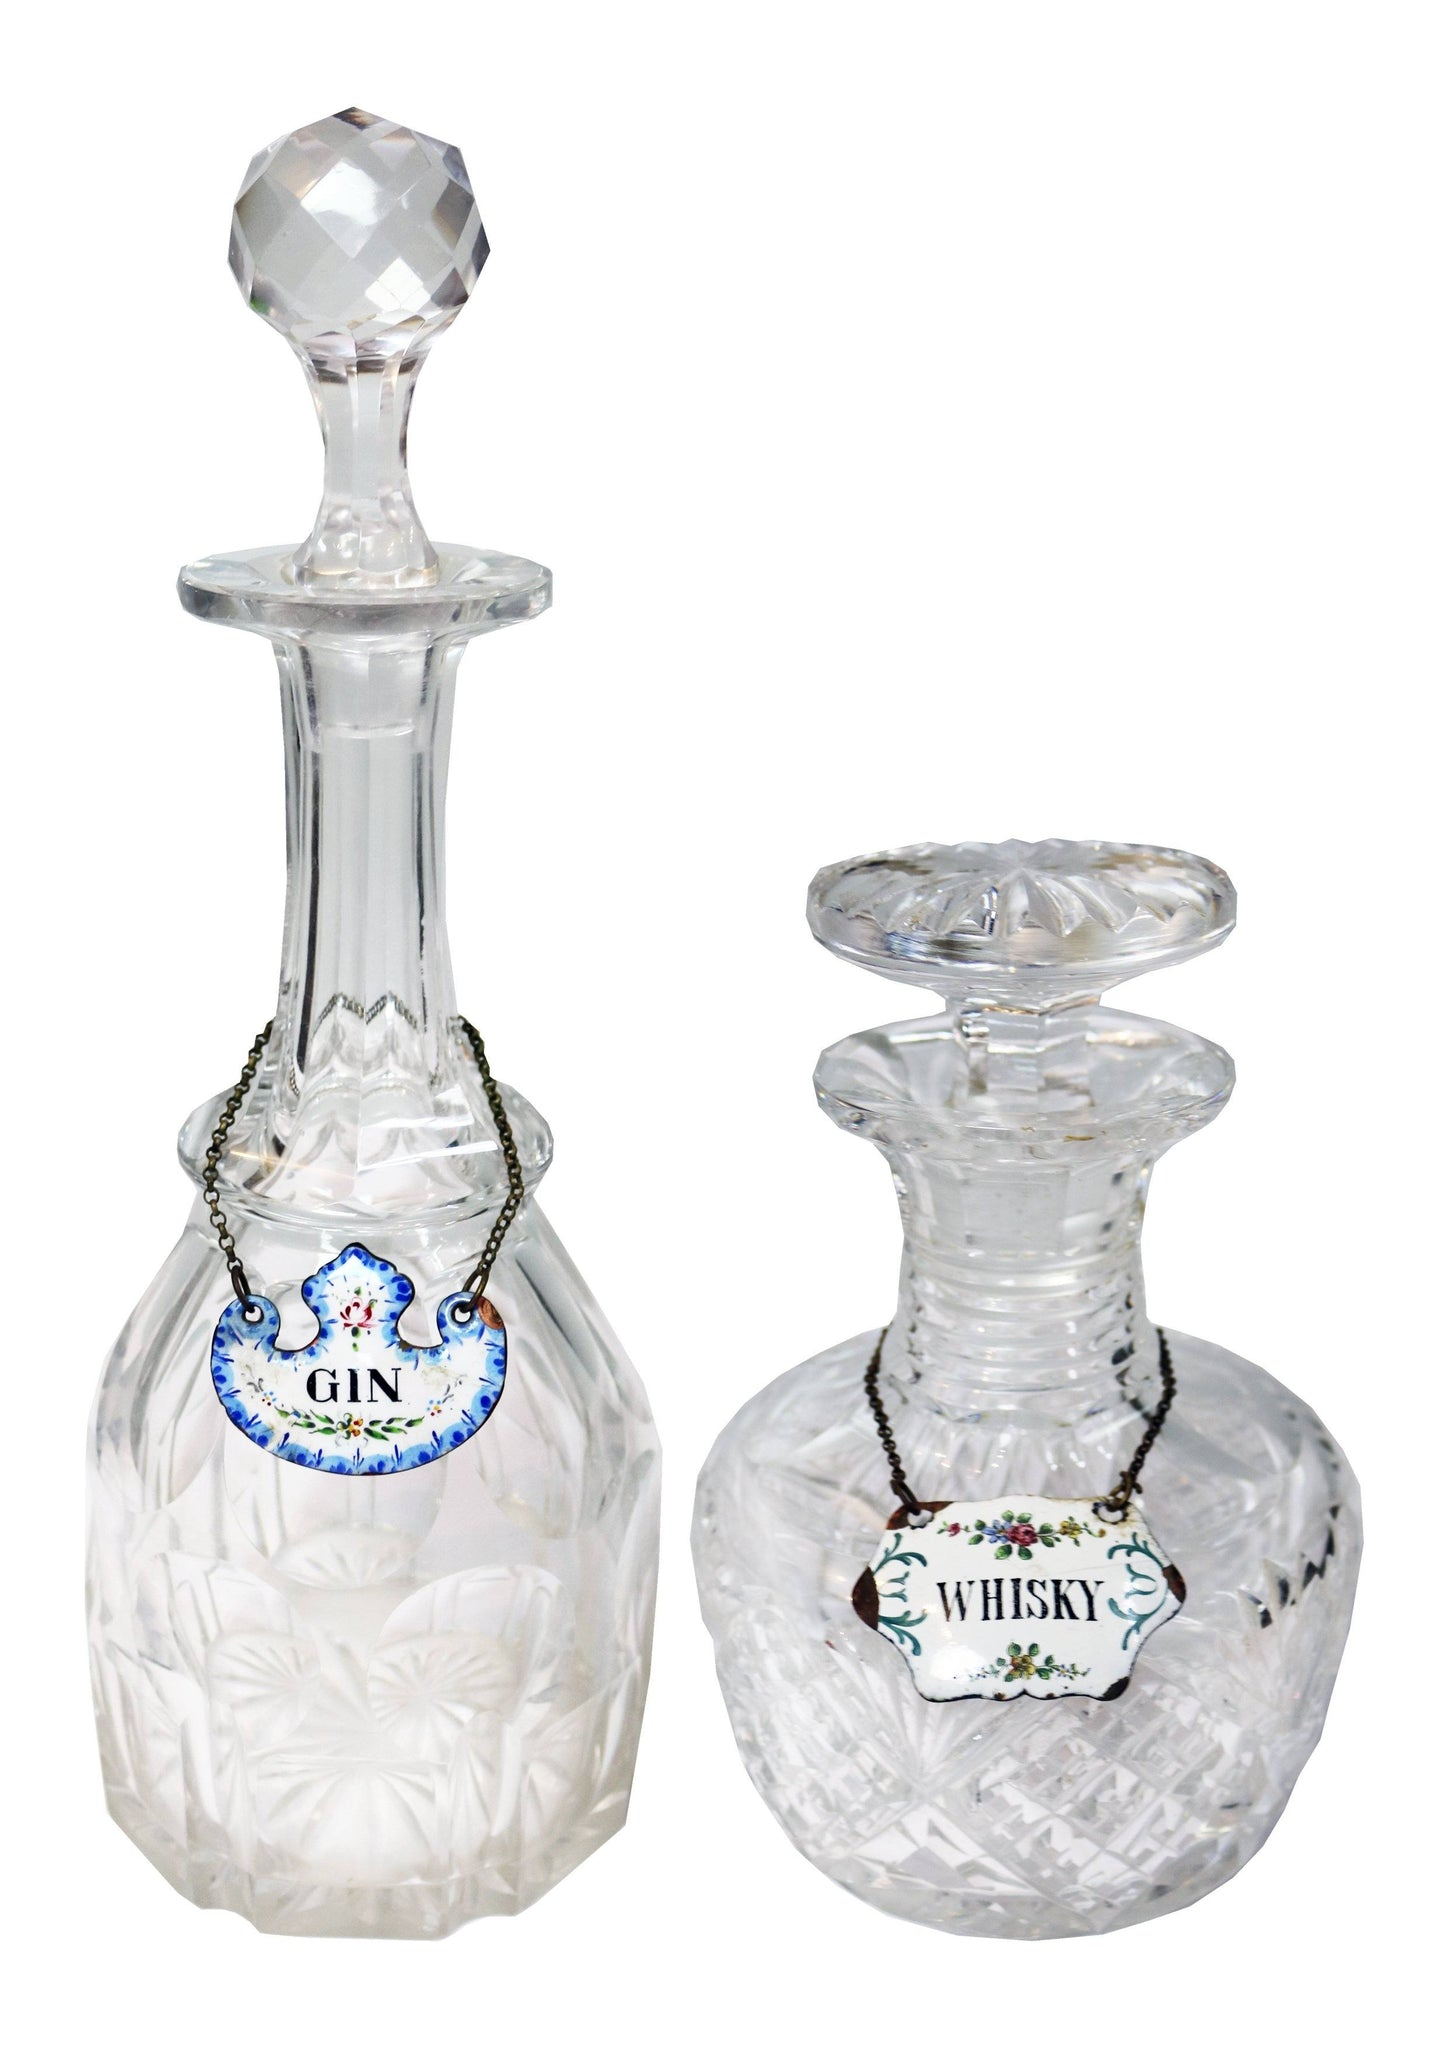 Whisky and Gin Decanters